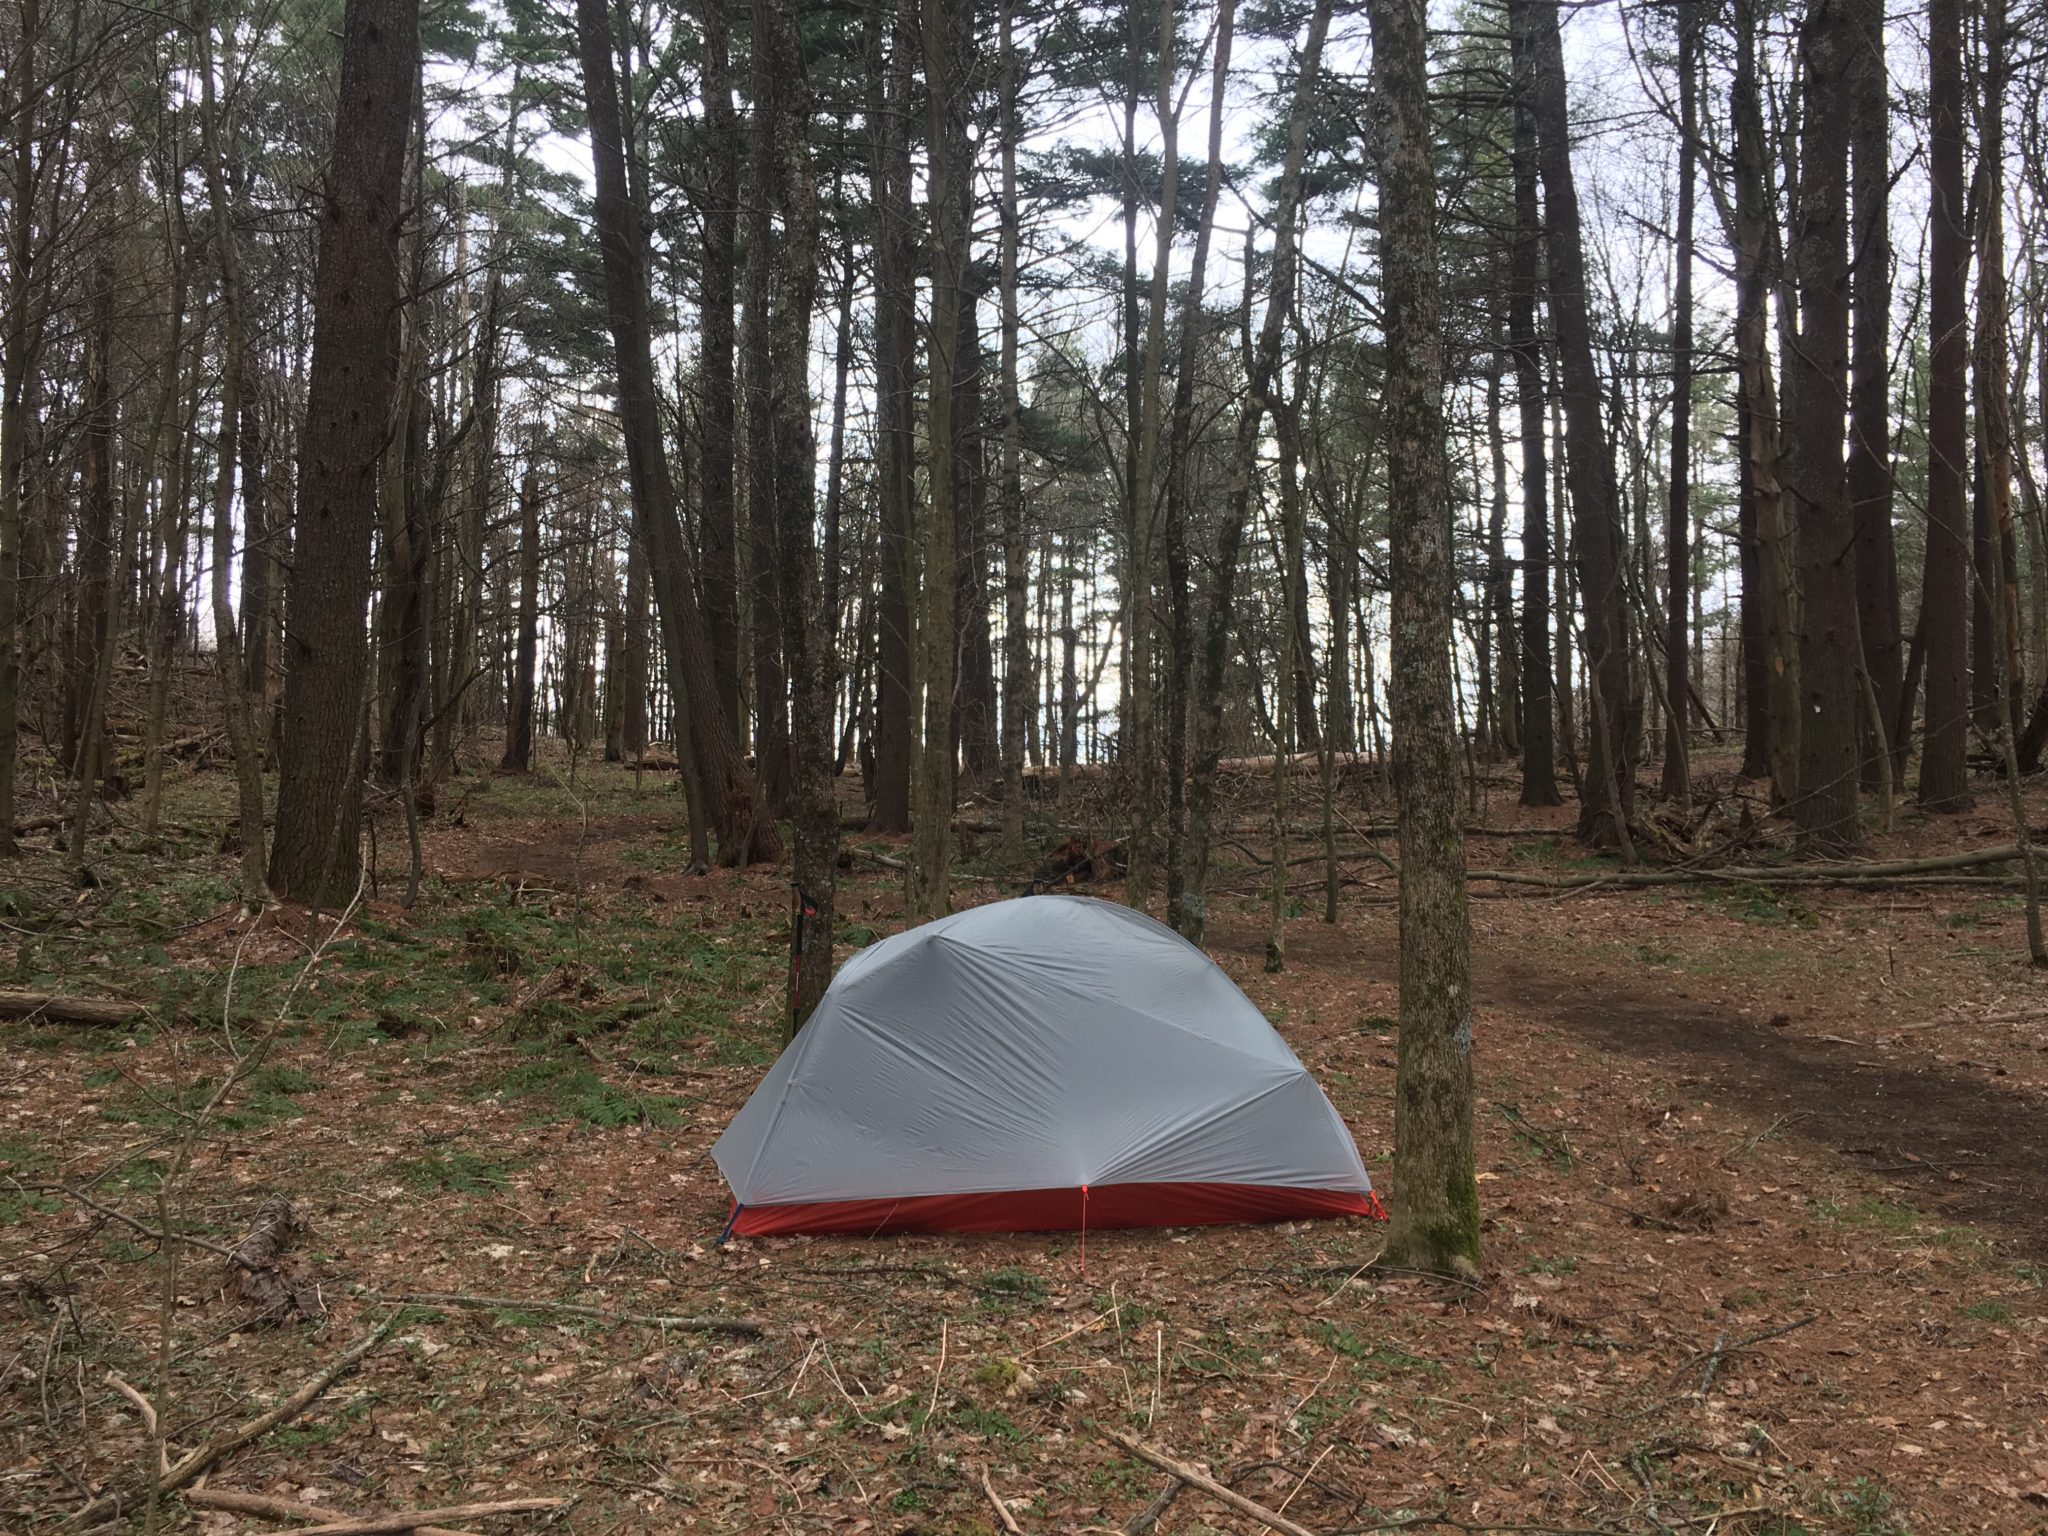 My first night camping alone in the woods without Michael